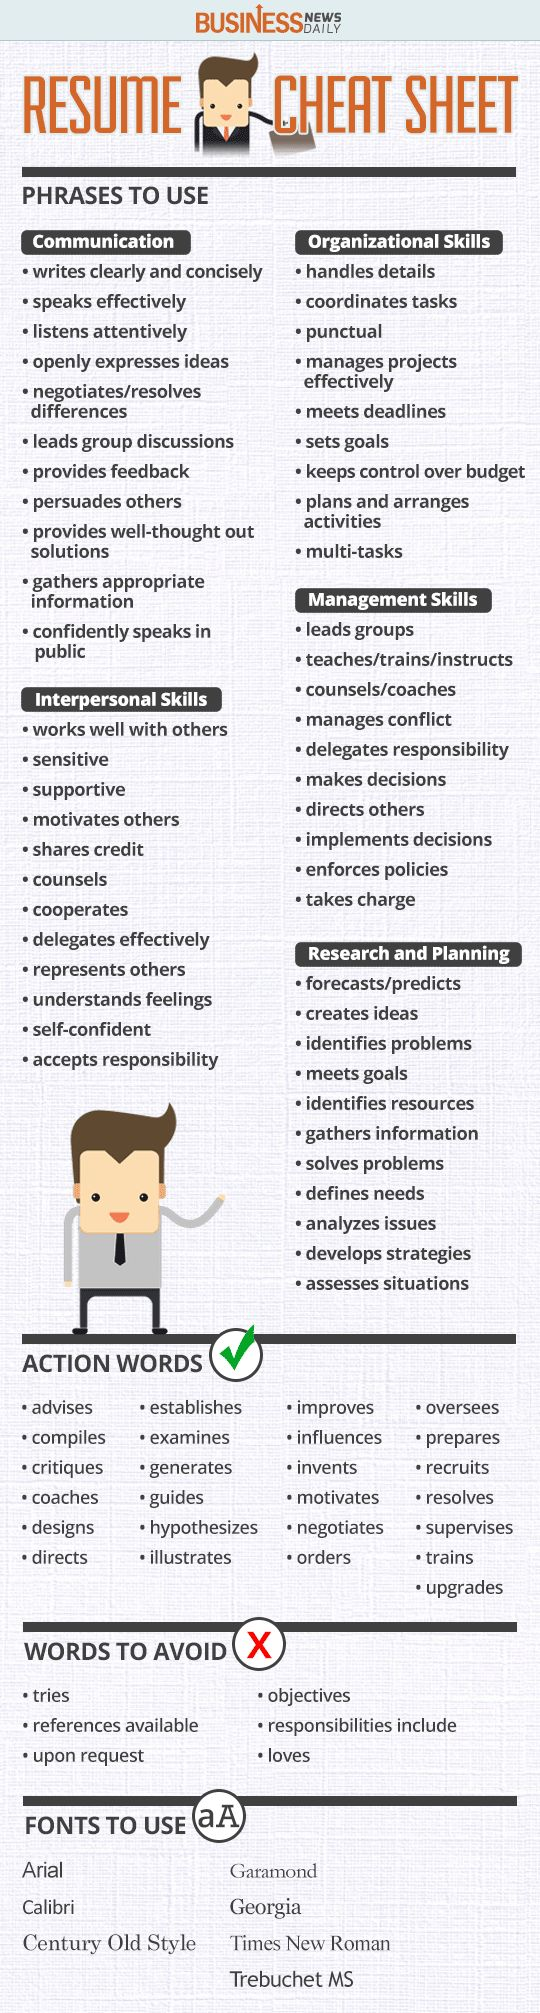 Opposenewapstandardsus  Surprising  Ideas About Resume On Pinterest  Cv Format Resume Cv And  With Goodlooking Resume Cheat Sheet Infographic Andrews Almost Done With A Complete Unit On Employment Which With Awesome Resume After College Also Sample Human Resources Resume In Addition Should I Put References On My Resume And Create A Resume Online For Free And Download As Well As Sample Registered Nurse Resume Additionally Sample Resume For High School Graduate From Pinterestcom With Opposenewapstandardsus  Goodlooking  Ideas About Resume On Pinterest  Cv Format Resume Cv And  With Awesome Resume Cheat Sheet Infographic Andrews Almost Done With A Complete Unit On Employment Which And Surprising Resume After College Also Sample Human Resources Resume In Addition Should I Put References On My Resume From Pinterestcom